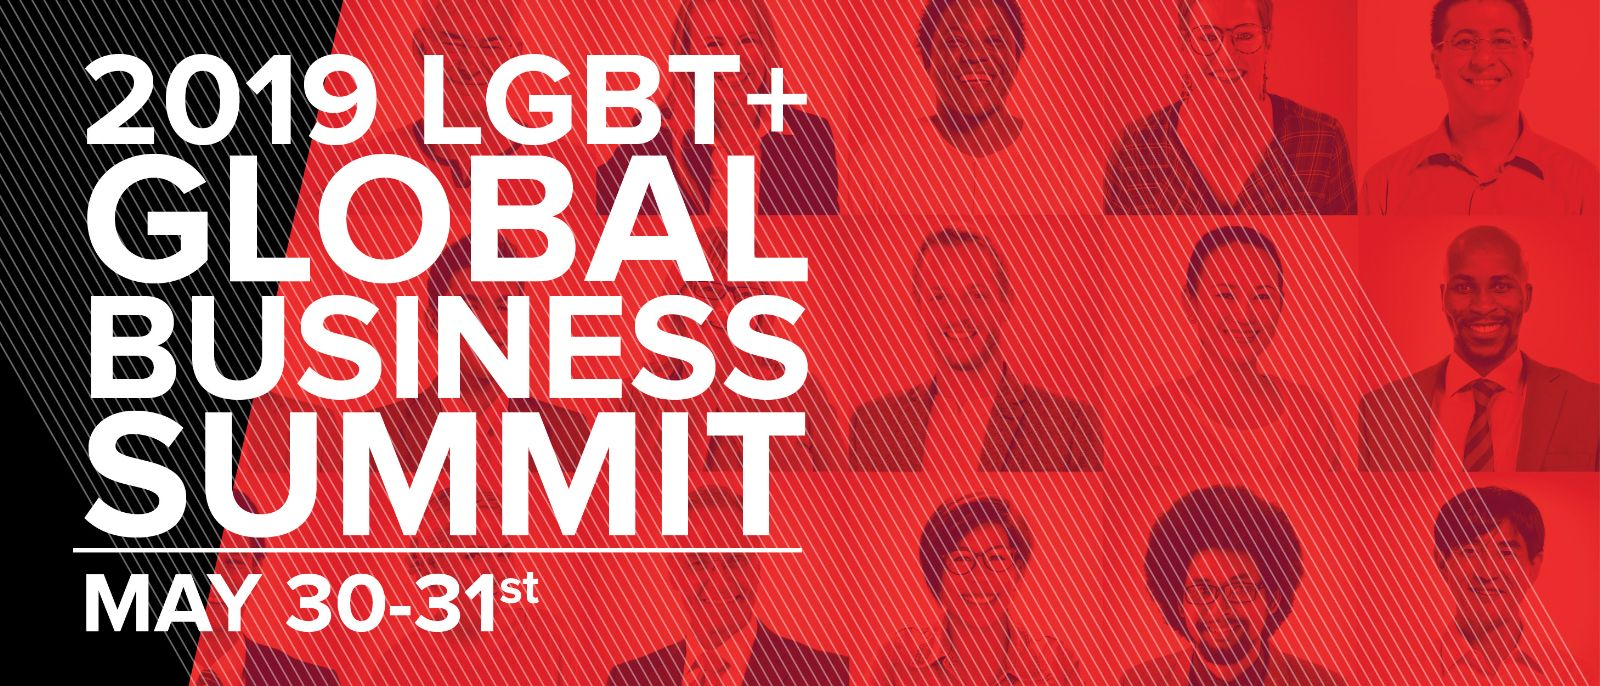 2019 LGBT+ Global Business Summit - May 30-31st